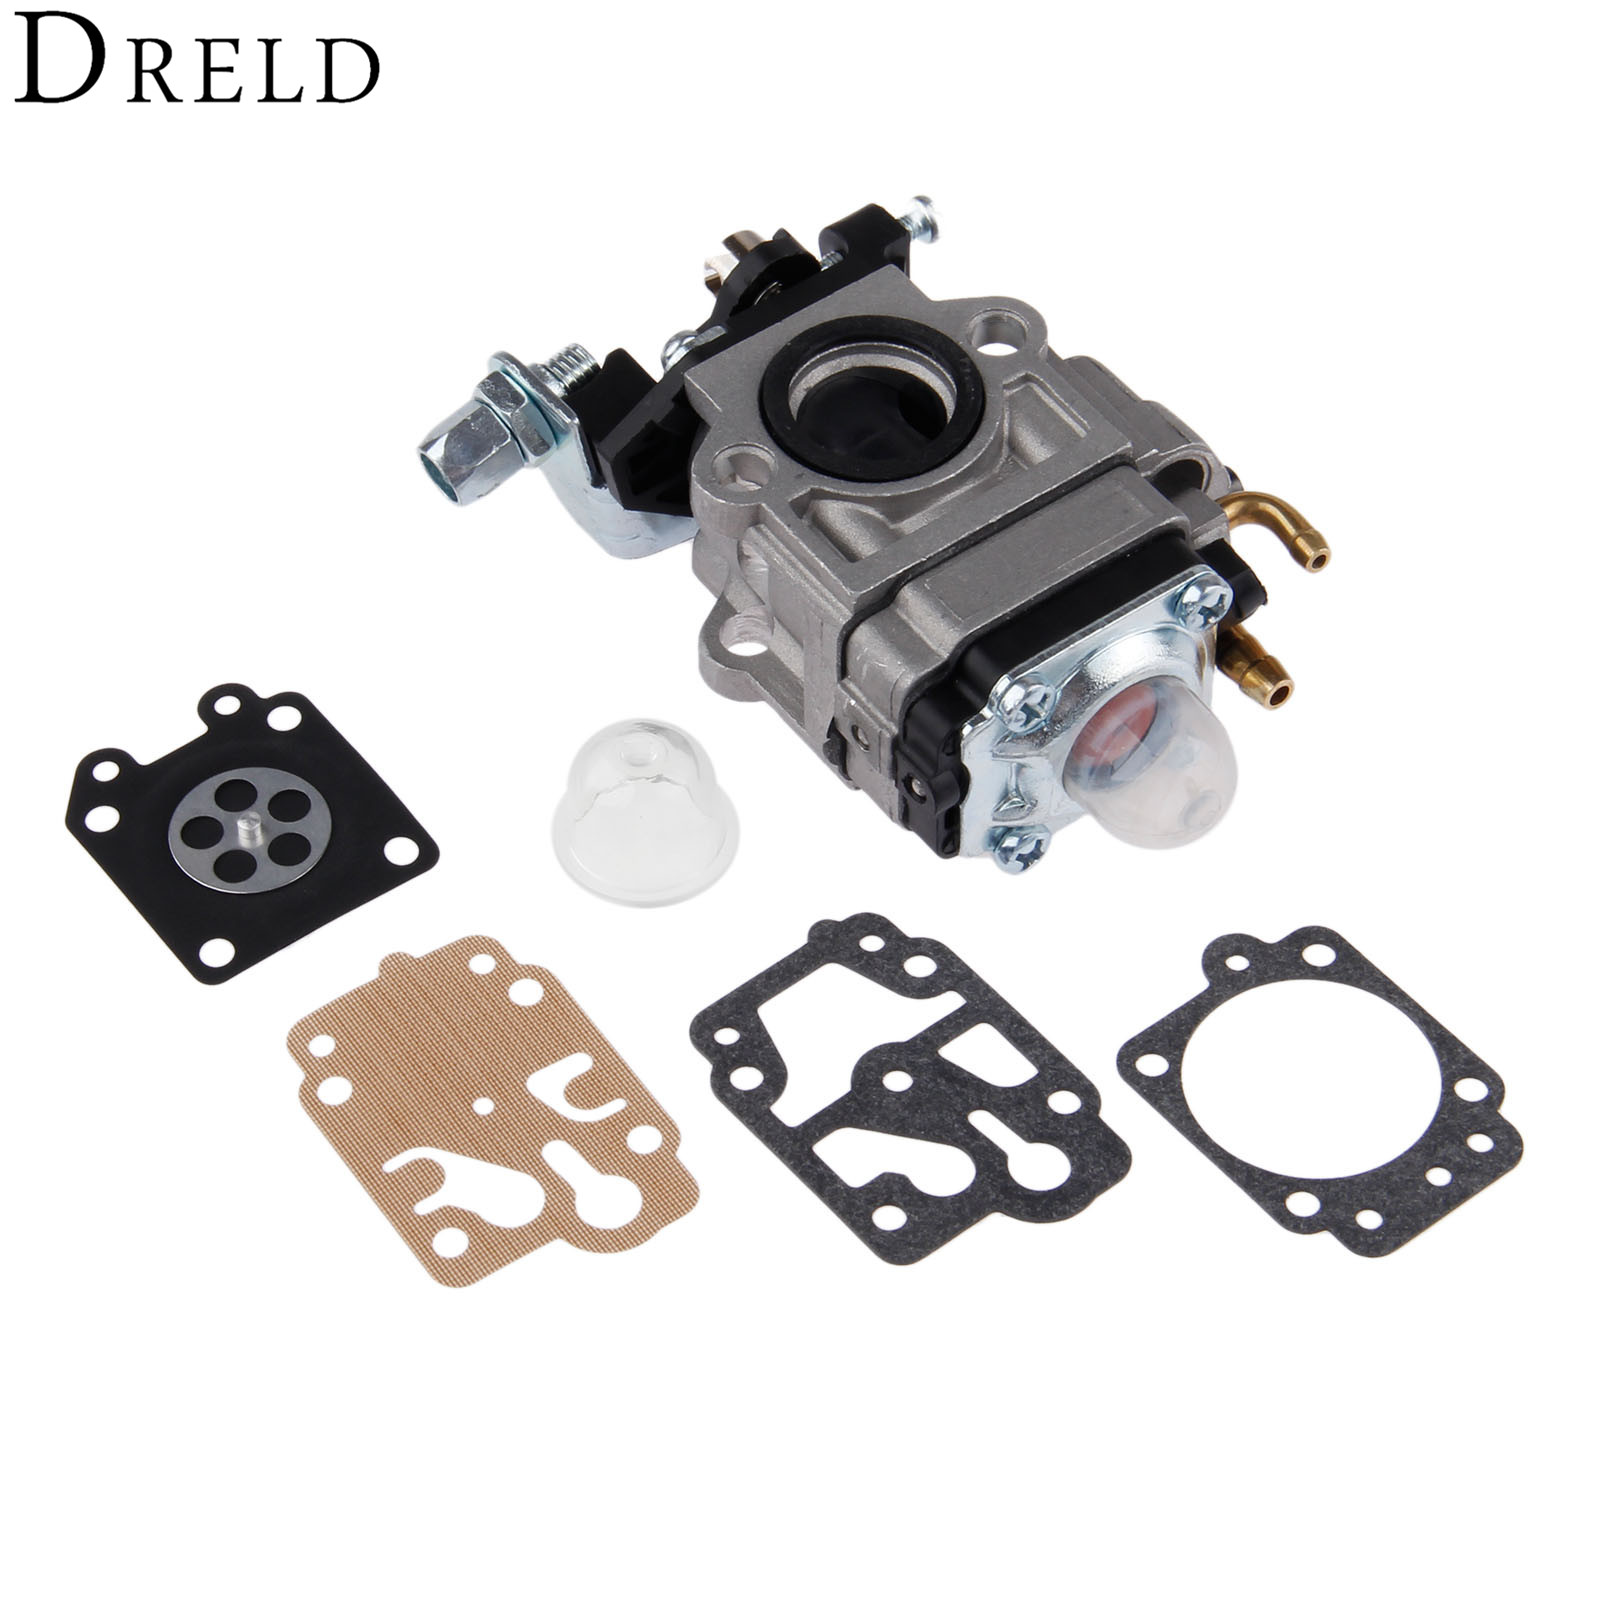 DRELD Grass Trimmer Carburetor with Repair Kits for DMP15 43CC 52CC CG430 CG520 BC430 BC520 Chinese Brush Cutter